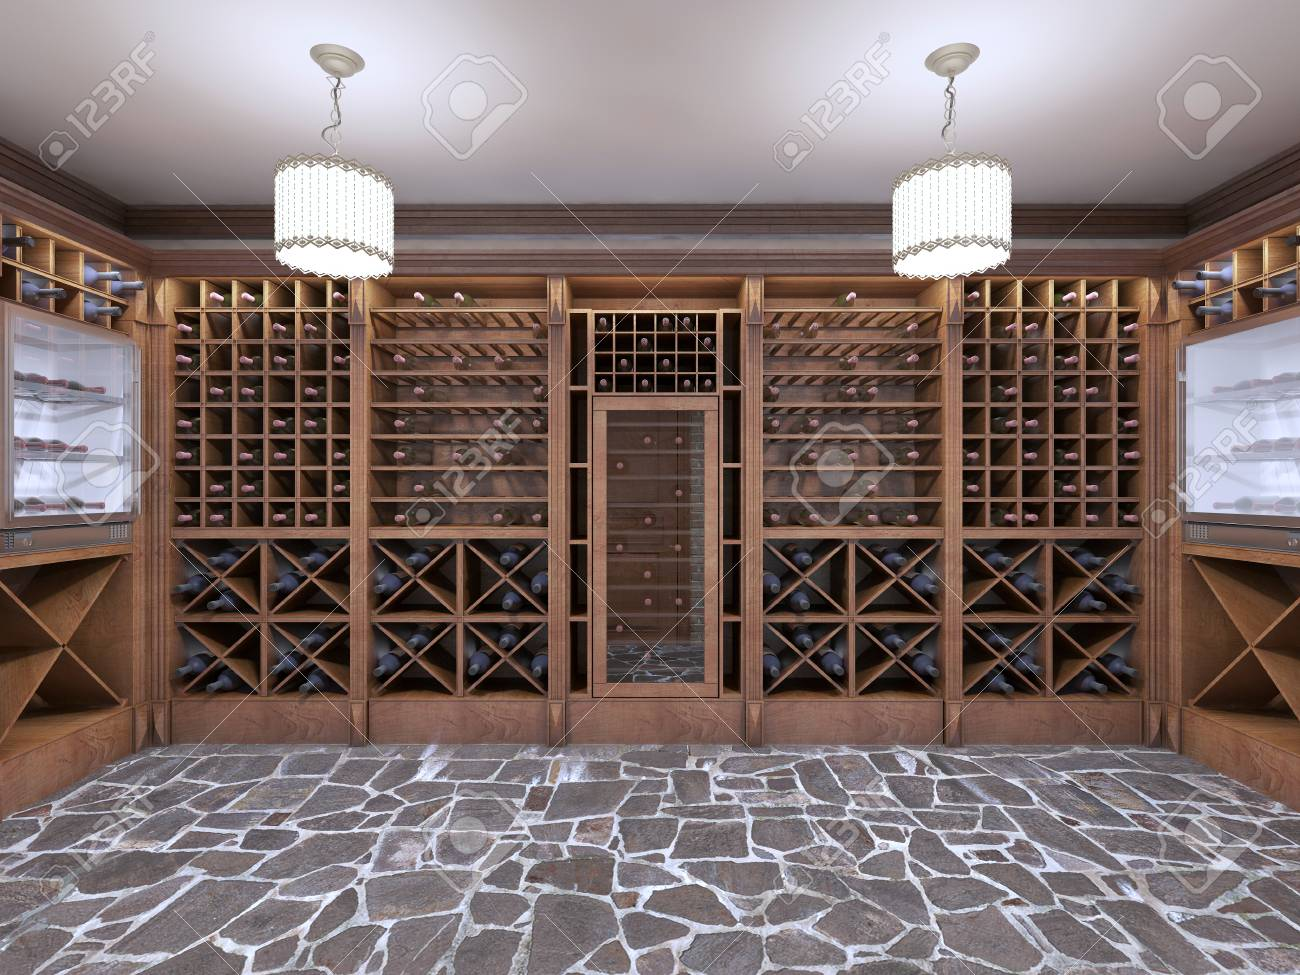 Wine Cellar In The Basement Of The House In A Rustic Style Open Stock Photo Picture And Royalty Free Image Image 66491981